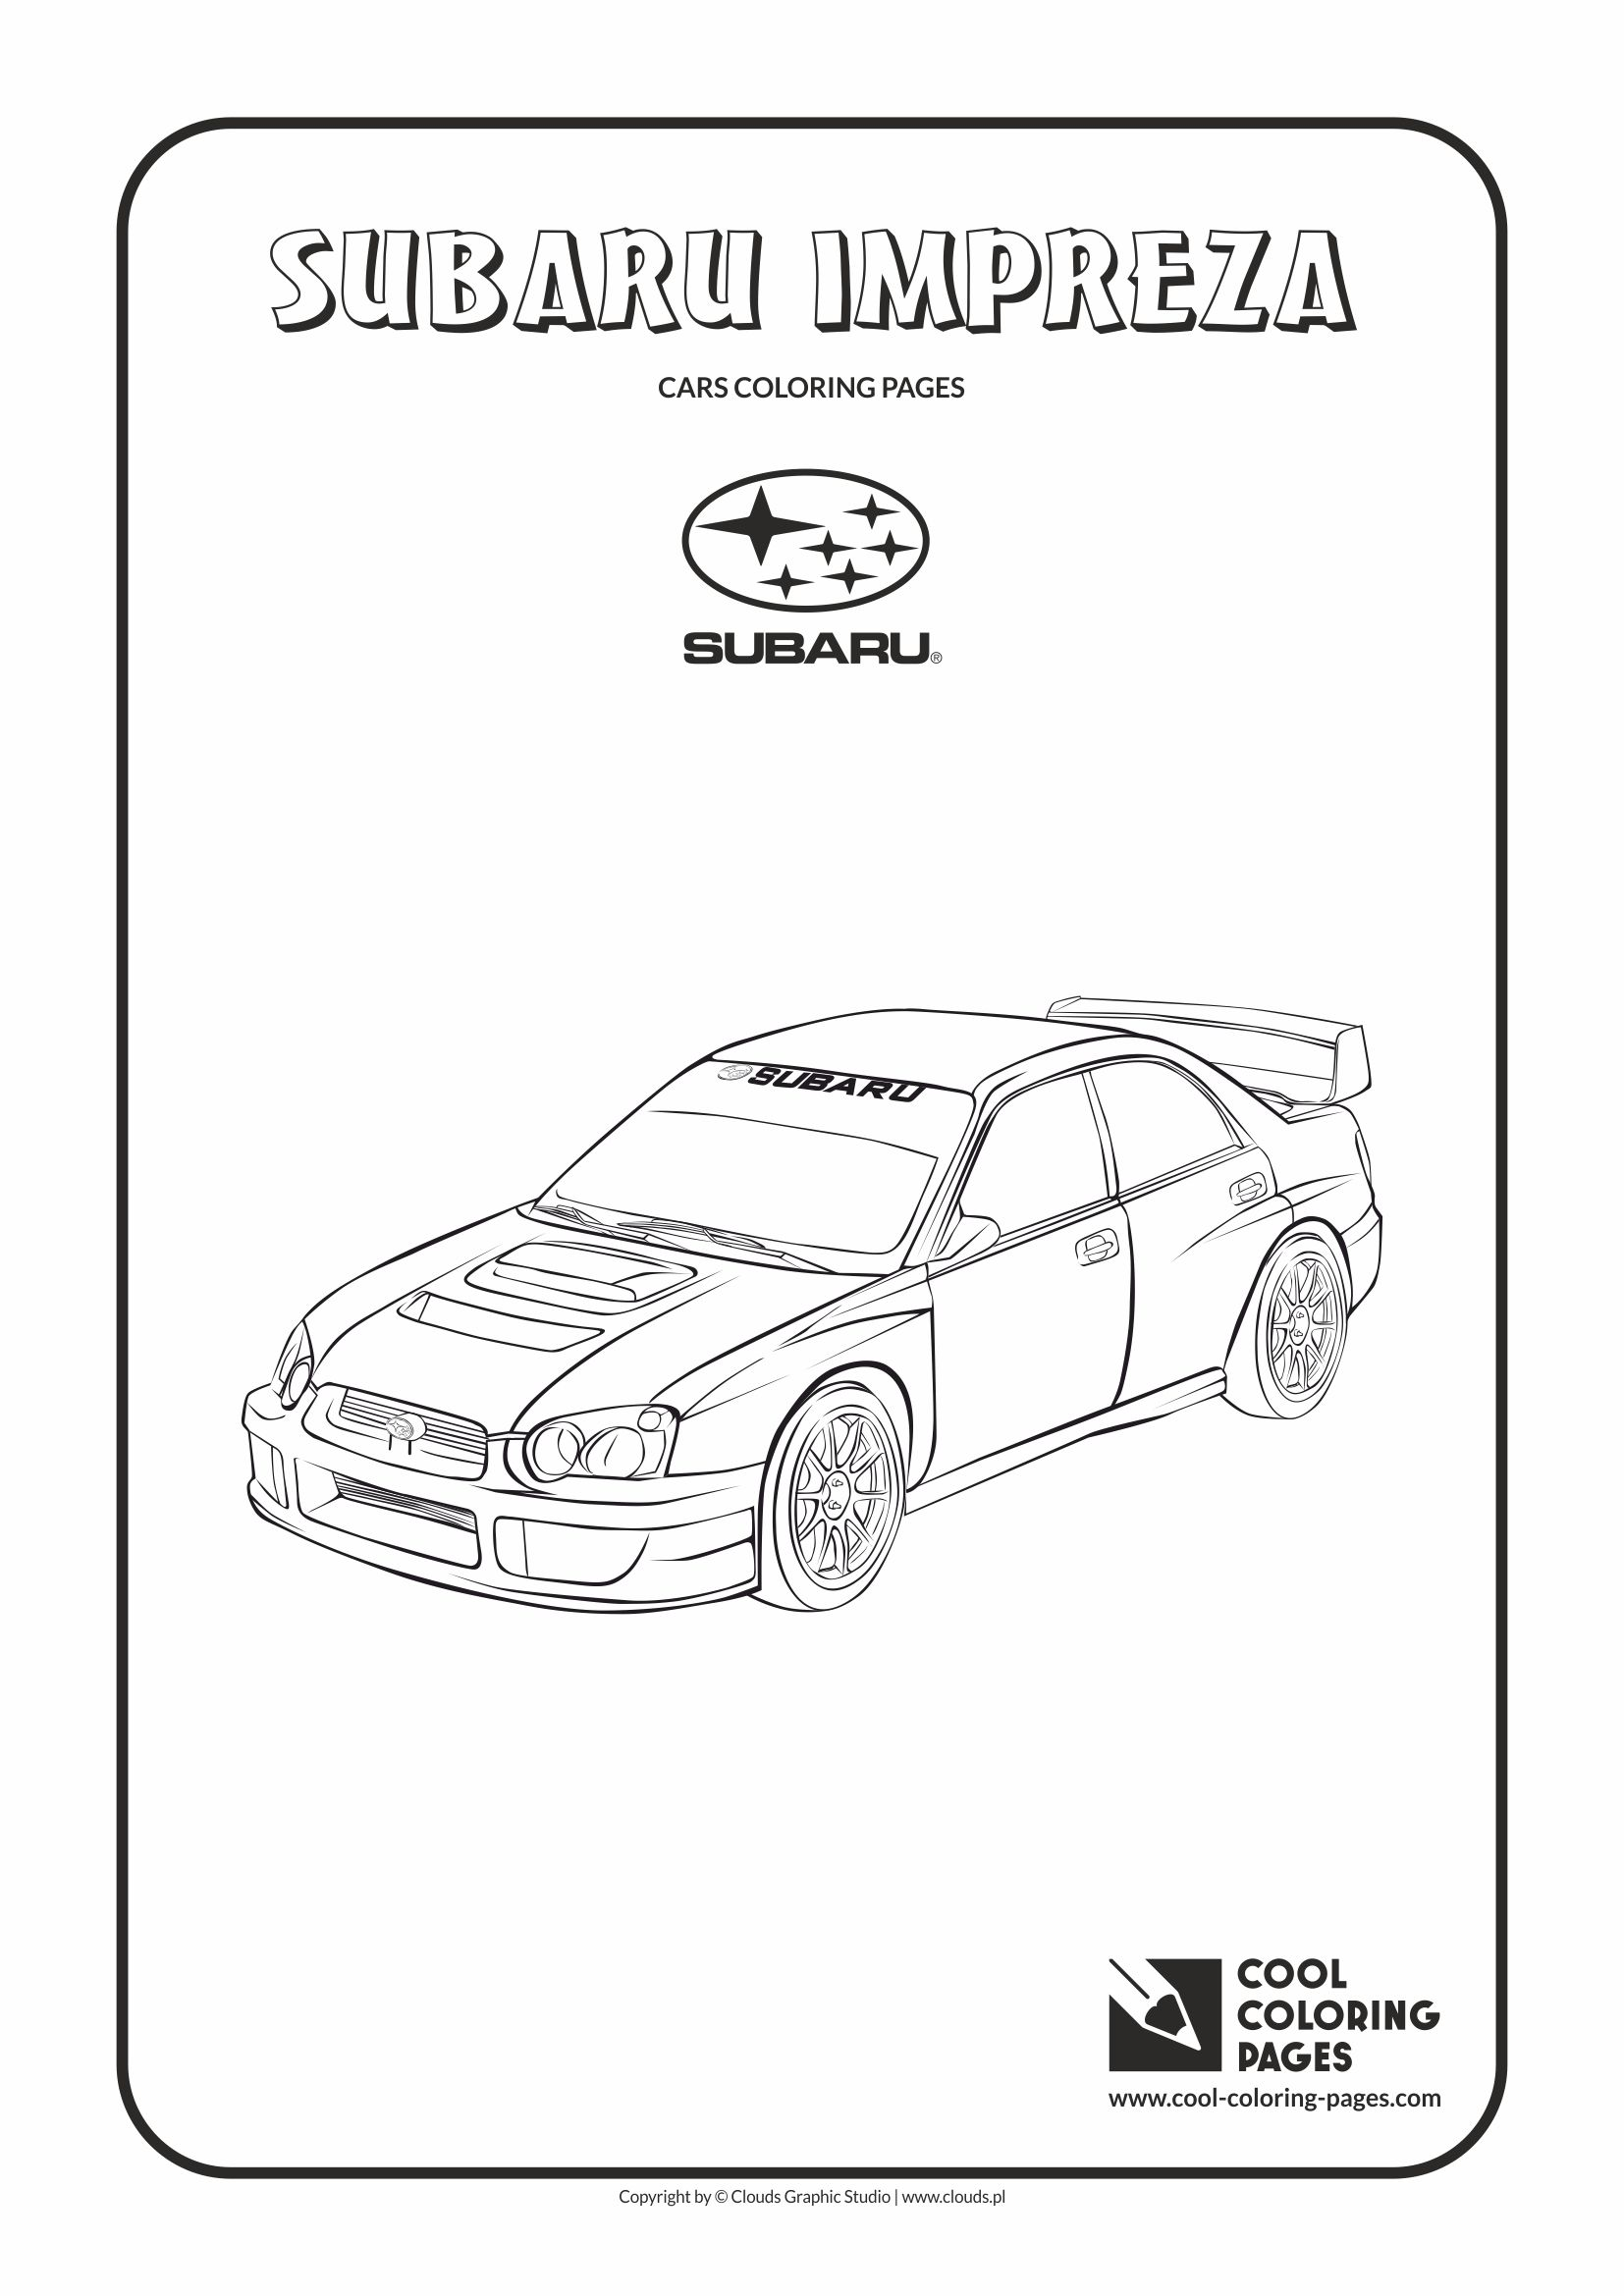 Subaru Impreza coloring page | Cool Coloring Pages